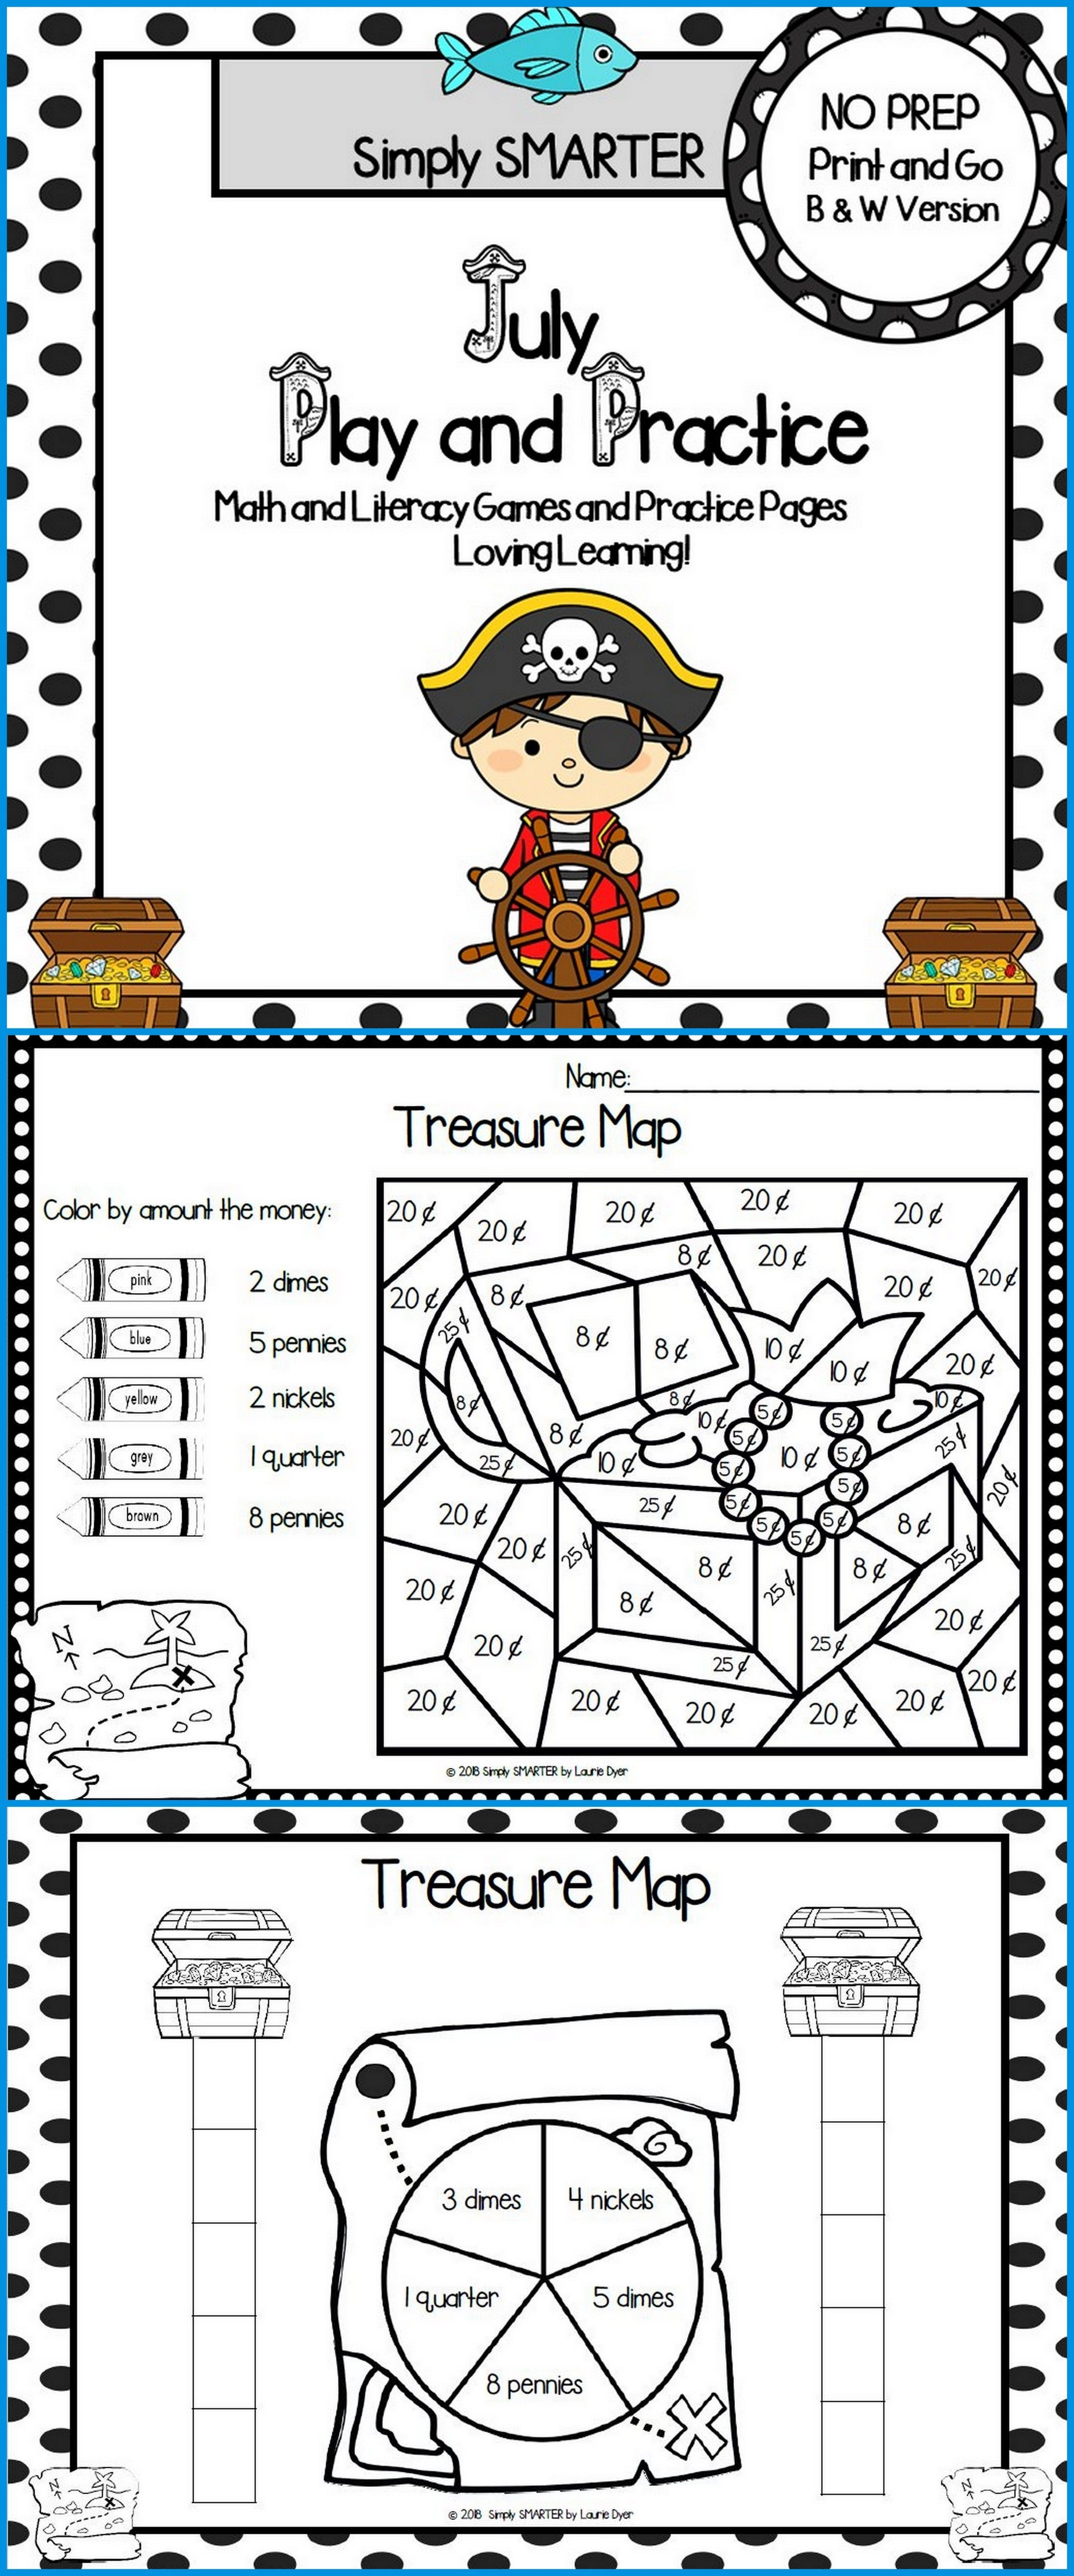 July Play And Practice No Prep Math And Literacy Games